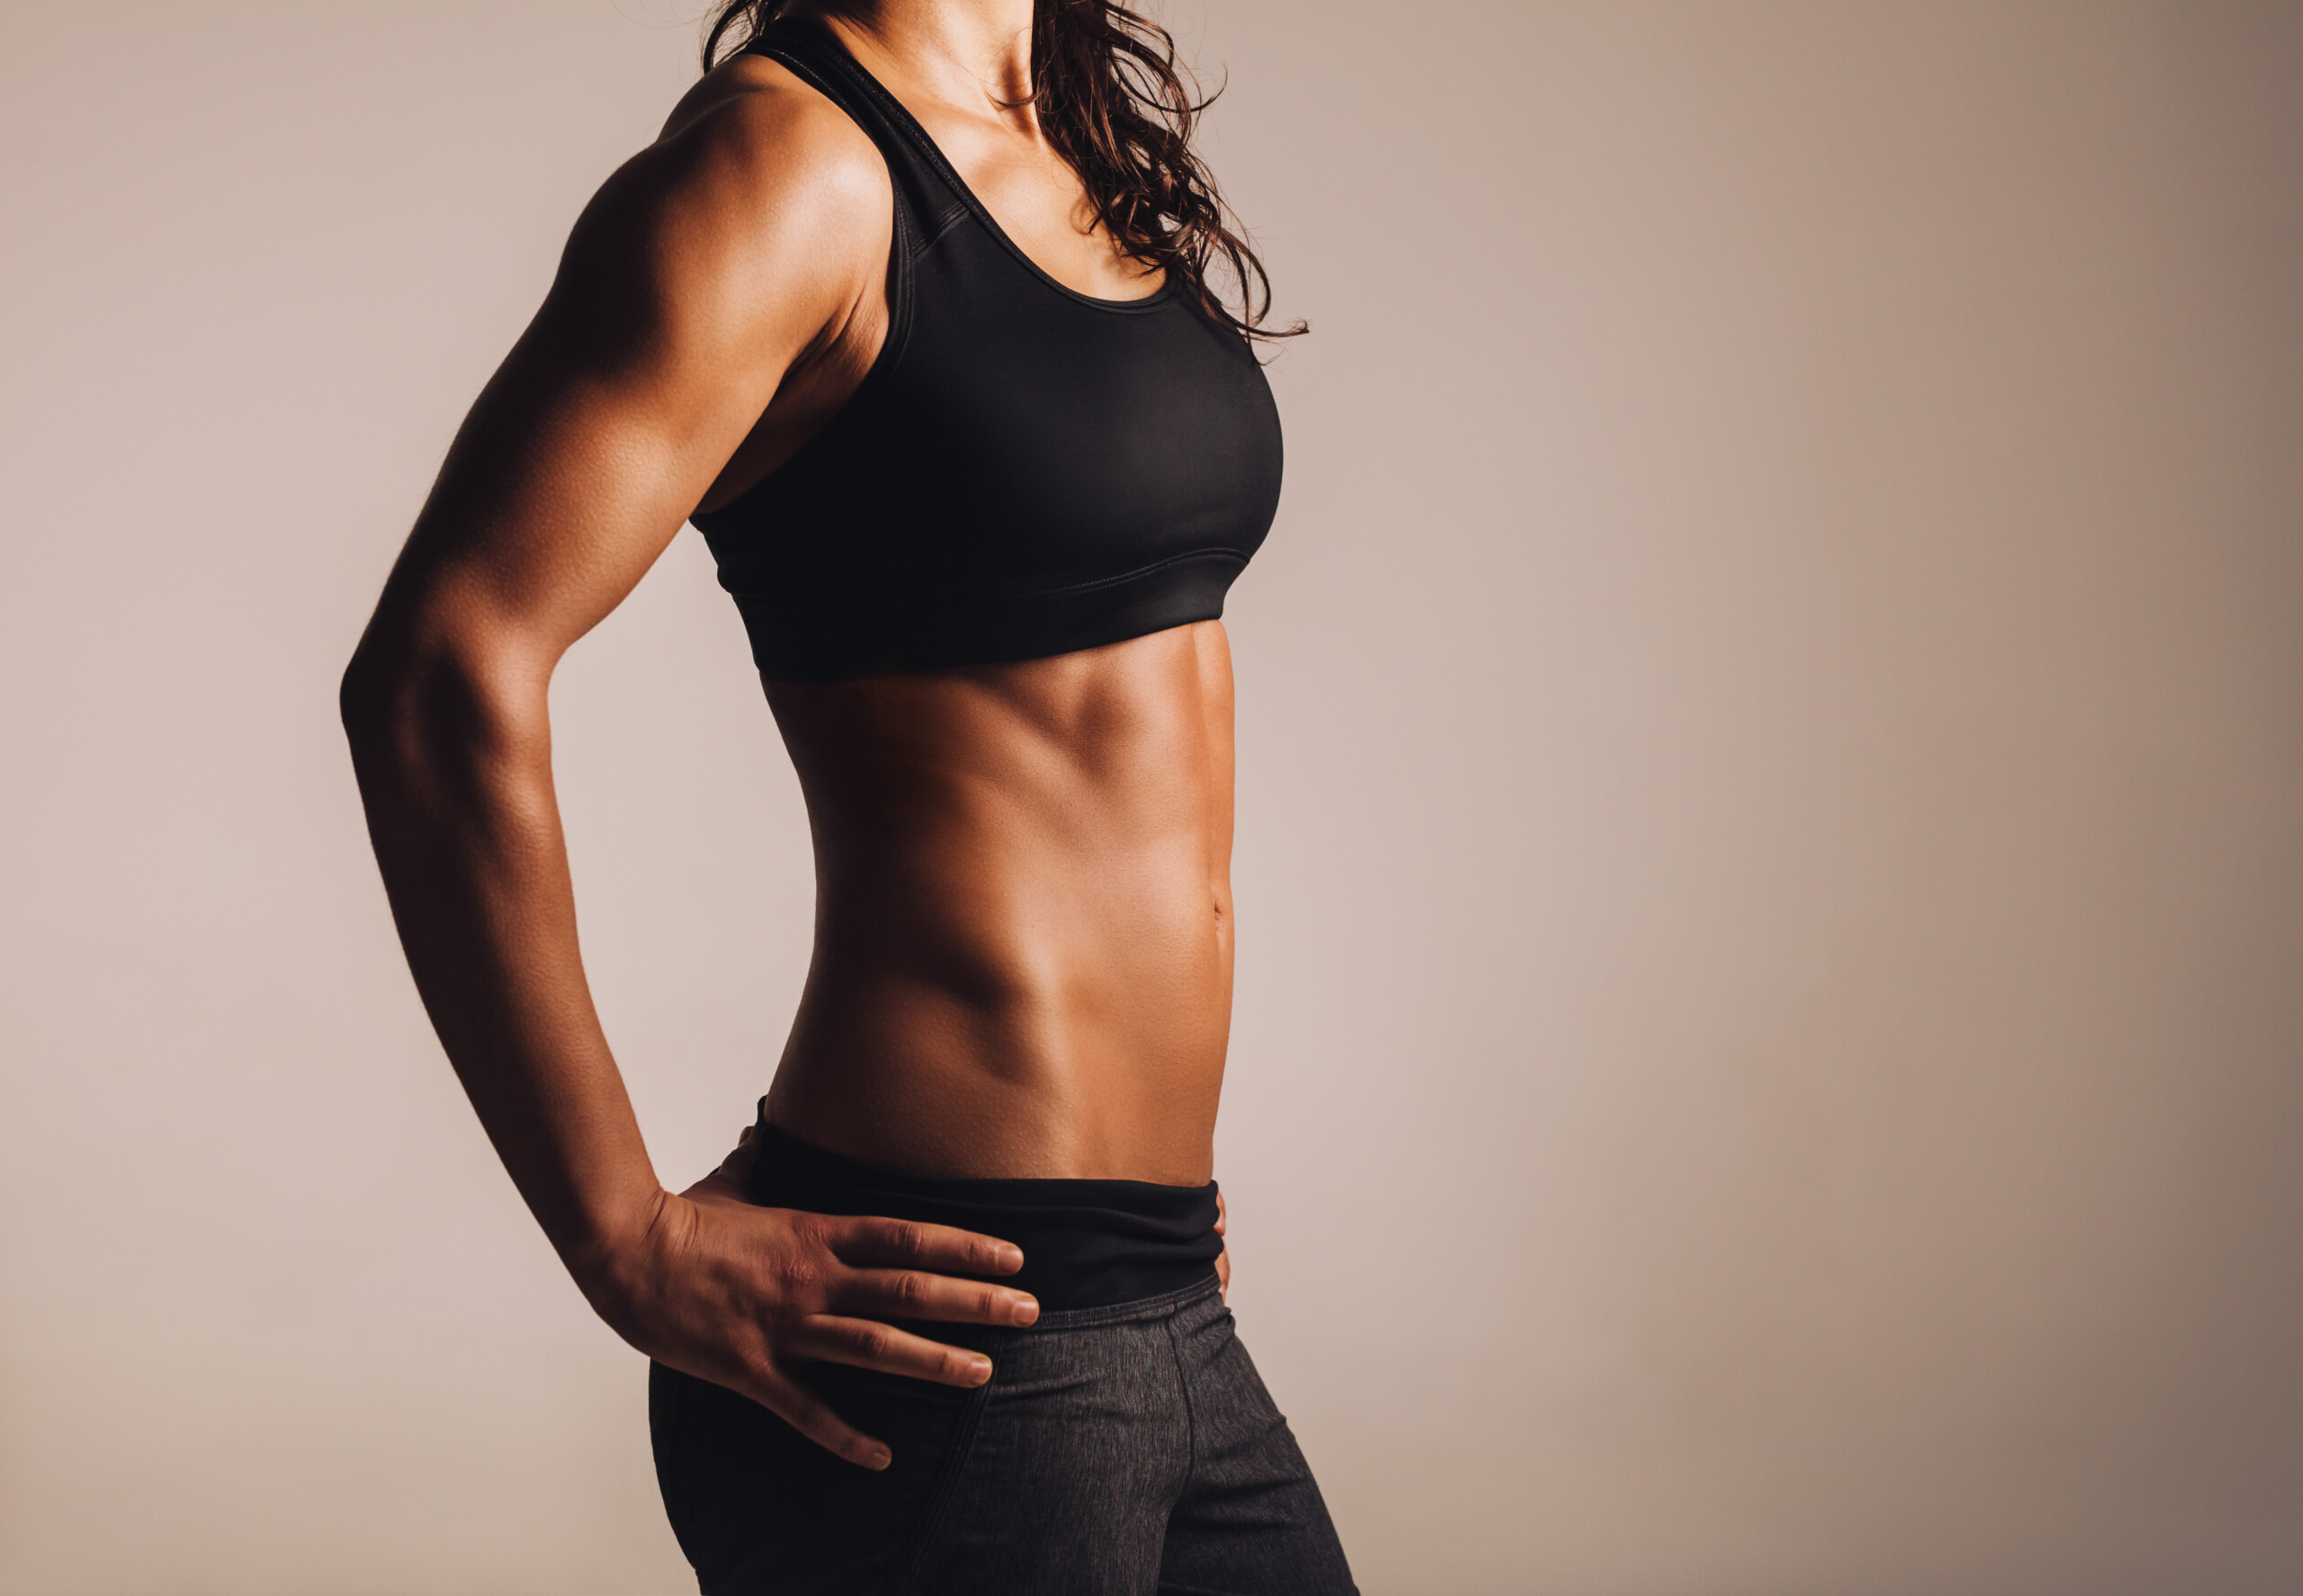 Is it Unhealthy if a Woman's Hip Bones Show?